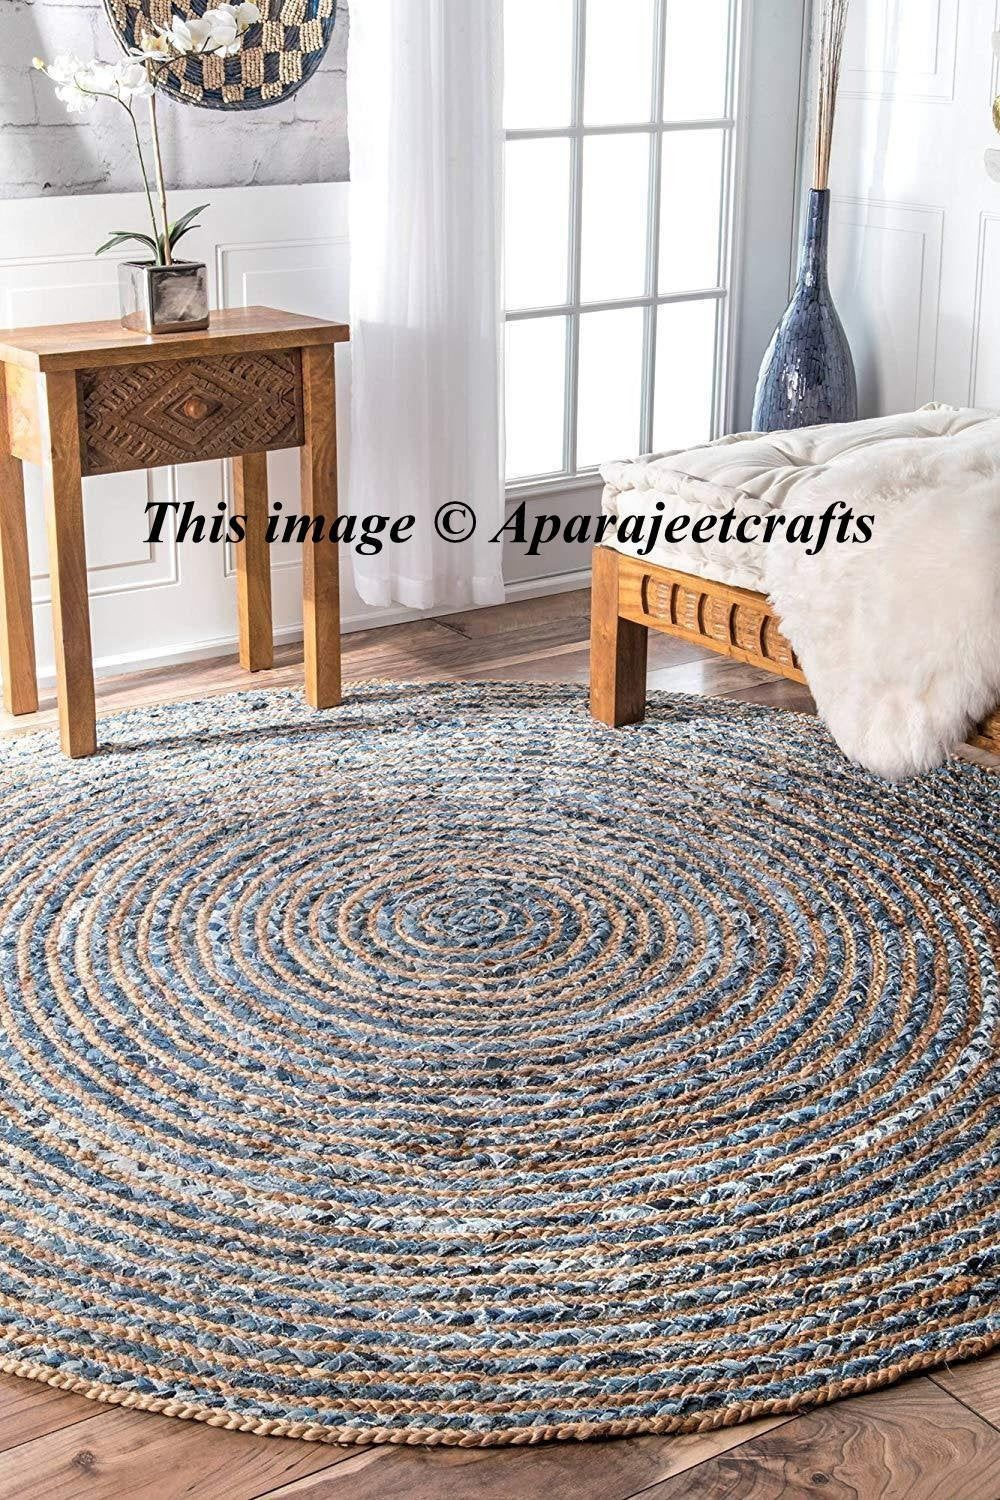 Hand Braided Bohemian Colorful Cotton Jut Area Rug Round Rug Blue Colors Home Decor Rugs Round Shape 3 Feet Diamete Braided Rag Rugs Jute Round Rug Jute Carpet